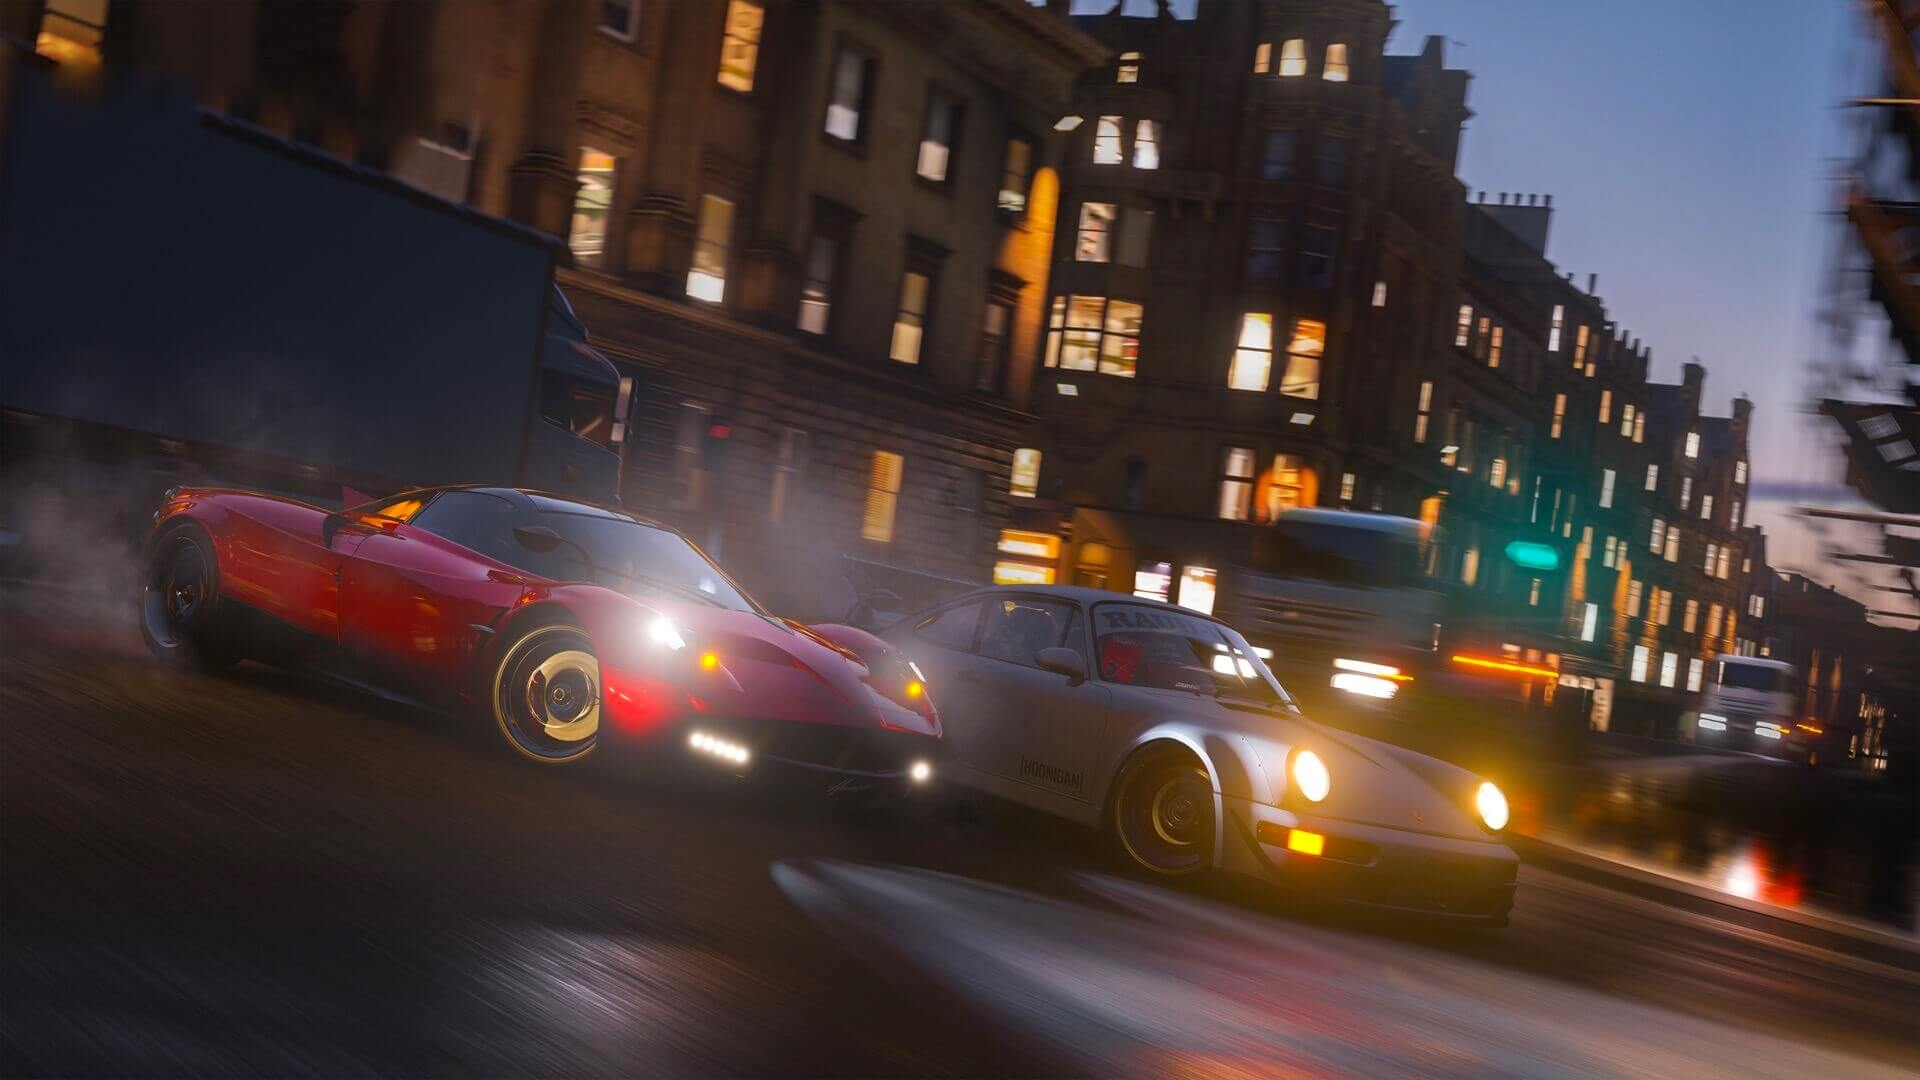 Forza Horizon 4 Update 9 Adds New Cars, Playlists, and More